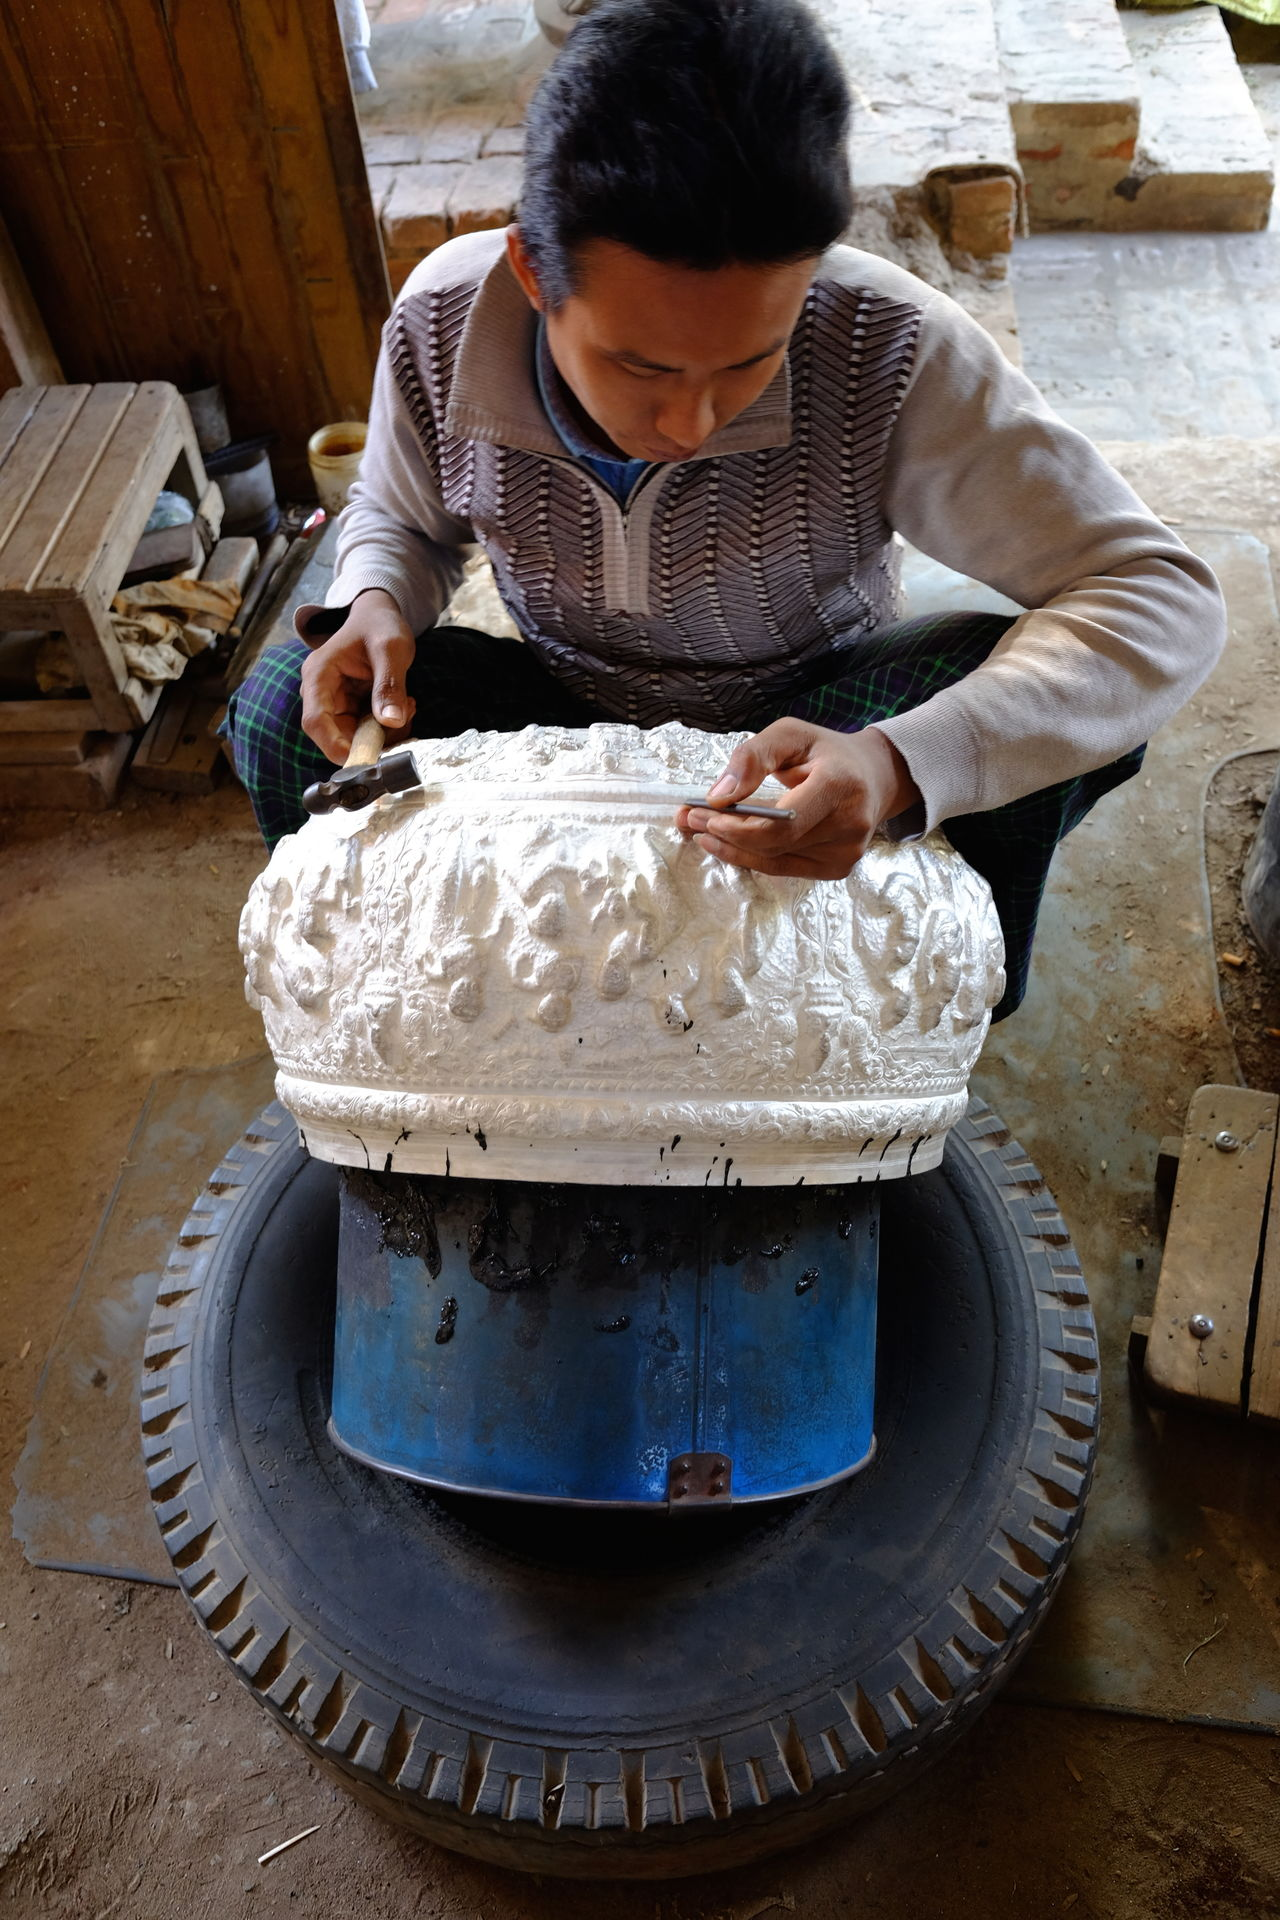 Making Embossed Silver Bowl Arts And Crafts Composition Creativity Embossing Full Frame Hand Made Indoor Photography Making A Living Mandalay Myanmar No Incidental People One Man Only One Person Ornate Design Production Silver  Silver Bowl Silversmith Silversmith's Trade Silverware  Tyre